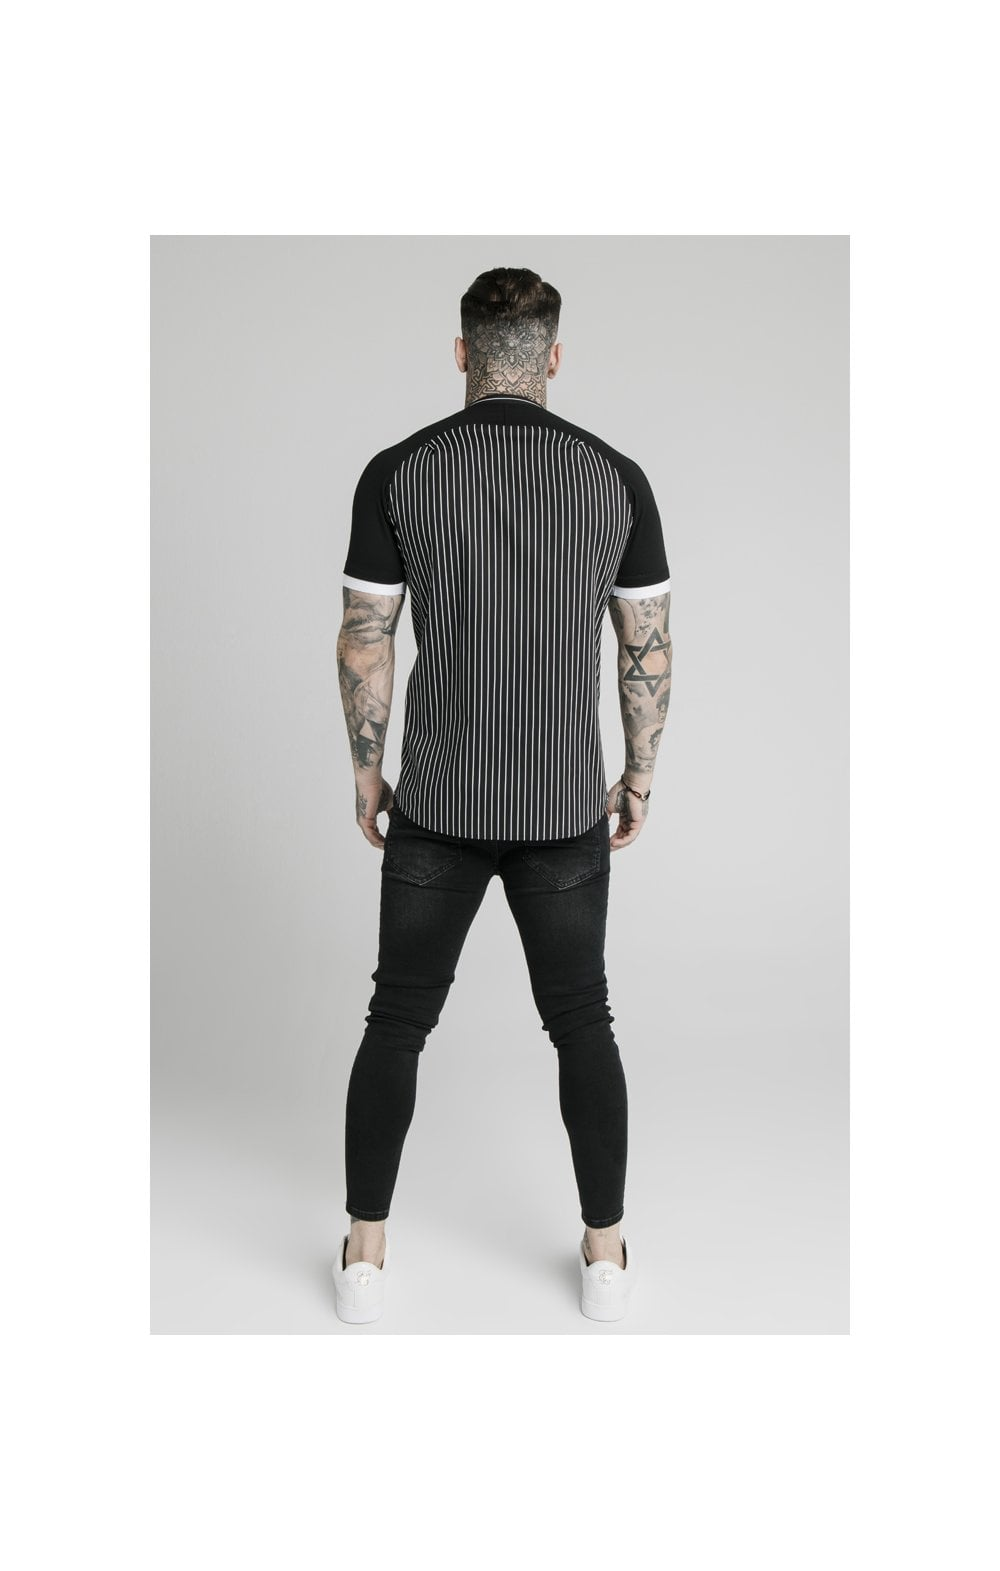 Load image into Gallery viewer, SikSilk S/S Raglan Inset Cuff  Shirt - Black & White (5)